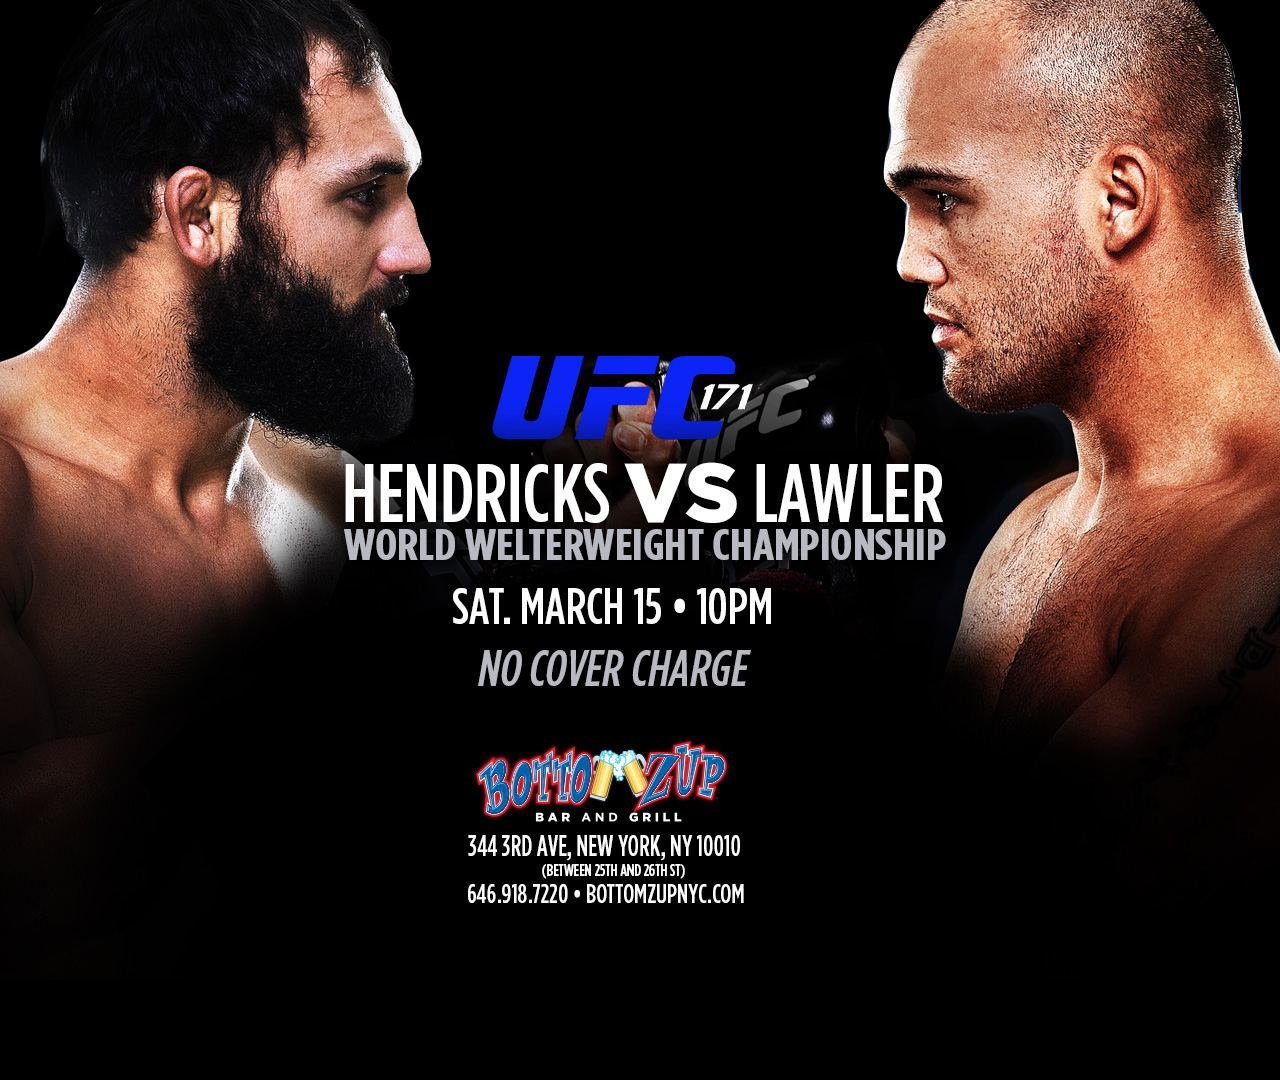 Free showing of UFC 171 at Bottomzup NYC – LatinTRENDS.com  Free showing of...